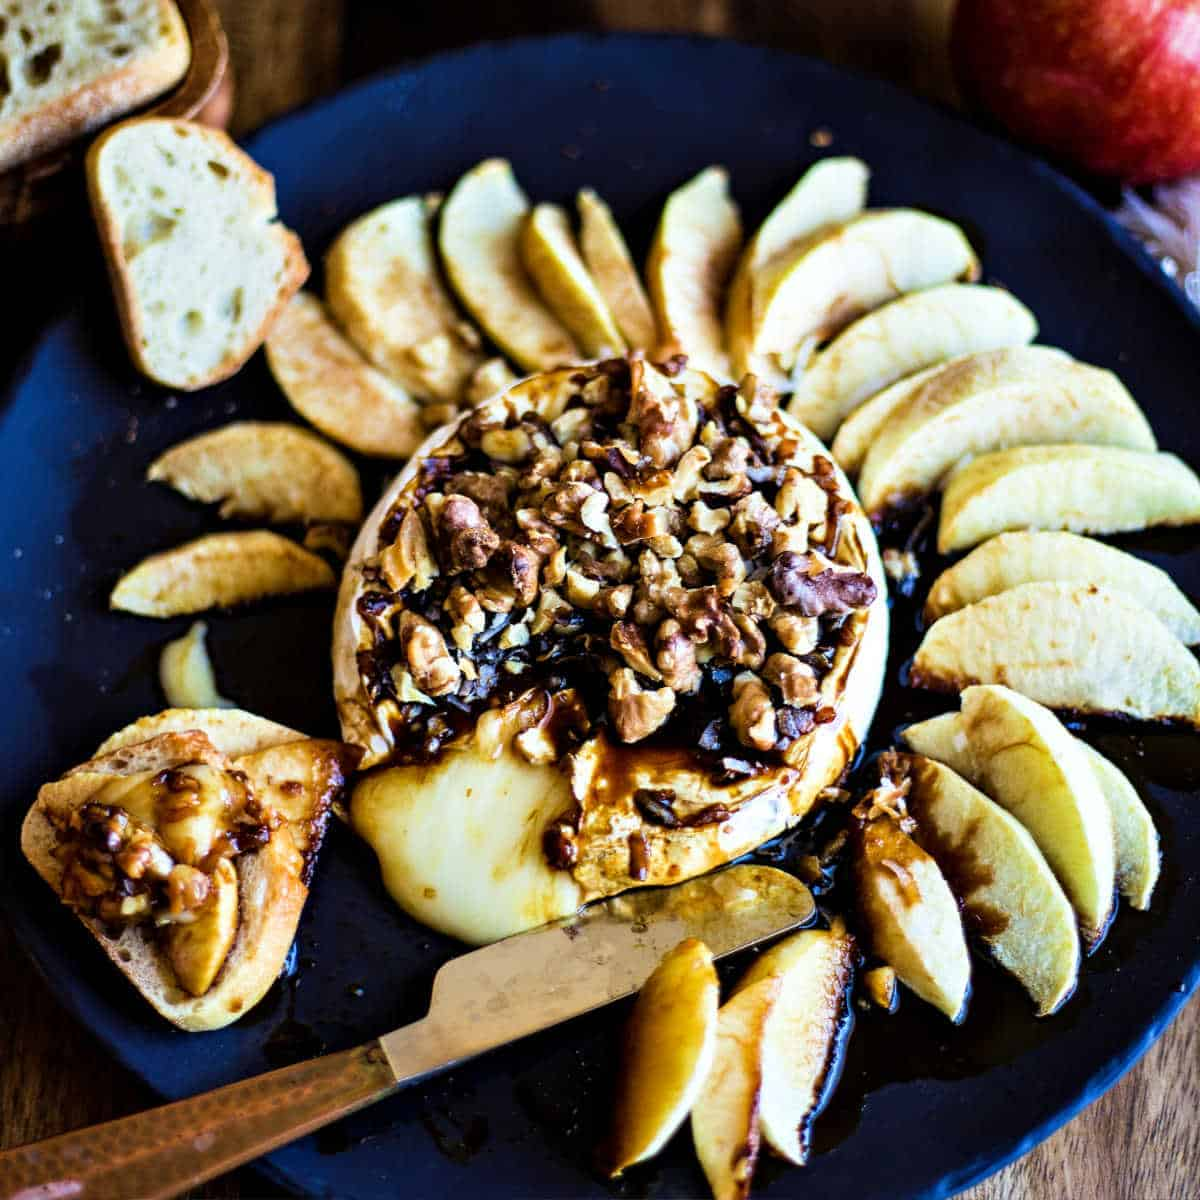 baked brie on a slate platter with apple slices, molasses, and walnuts with the cheese ozzing